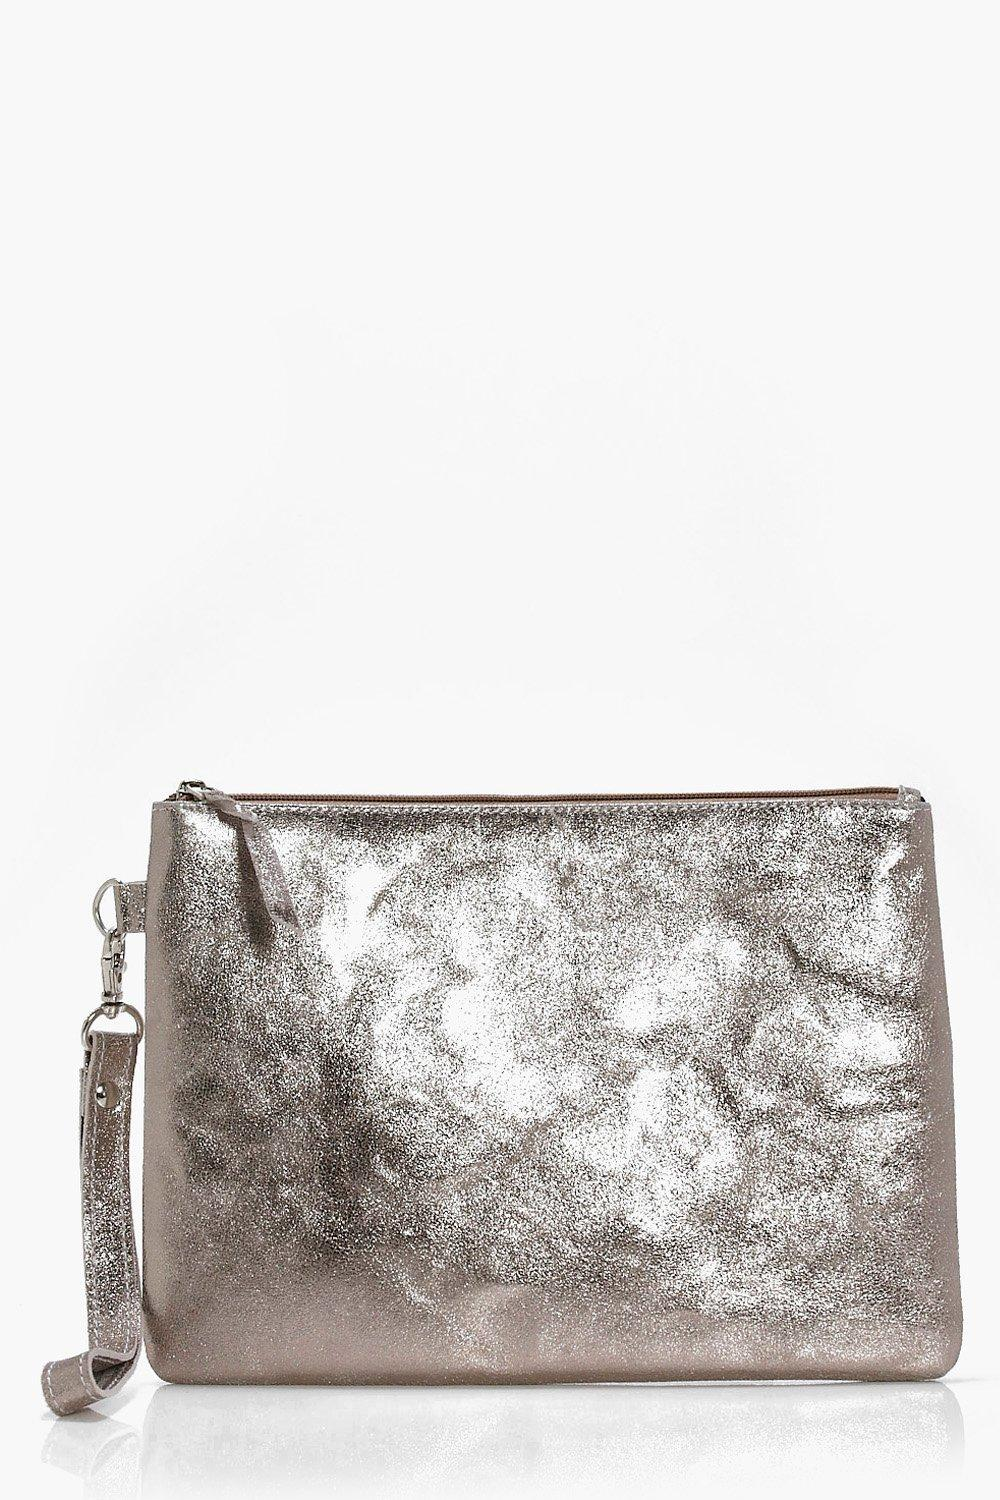 Boutique Distressed Leather Clutch - pewter - Dais